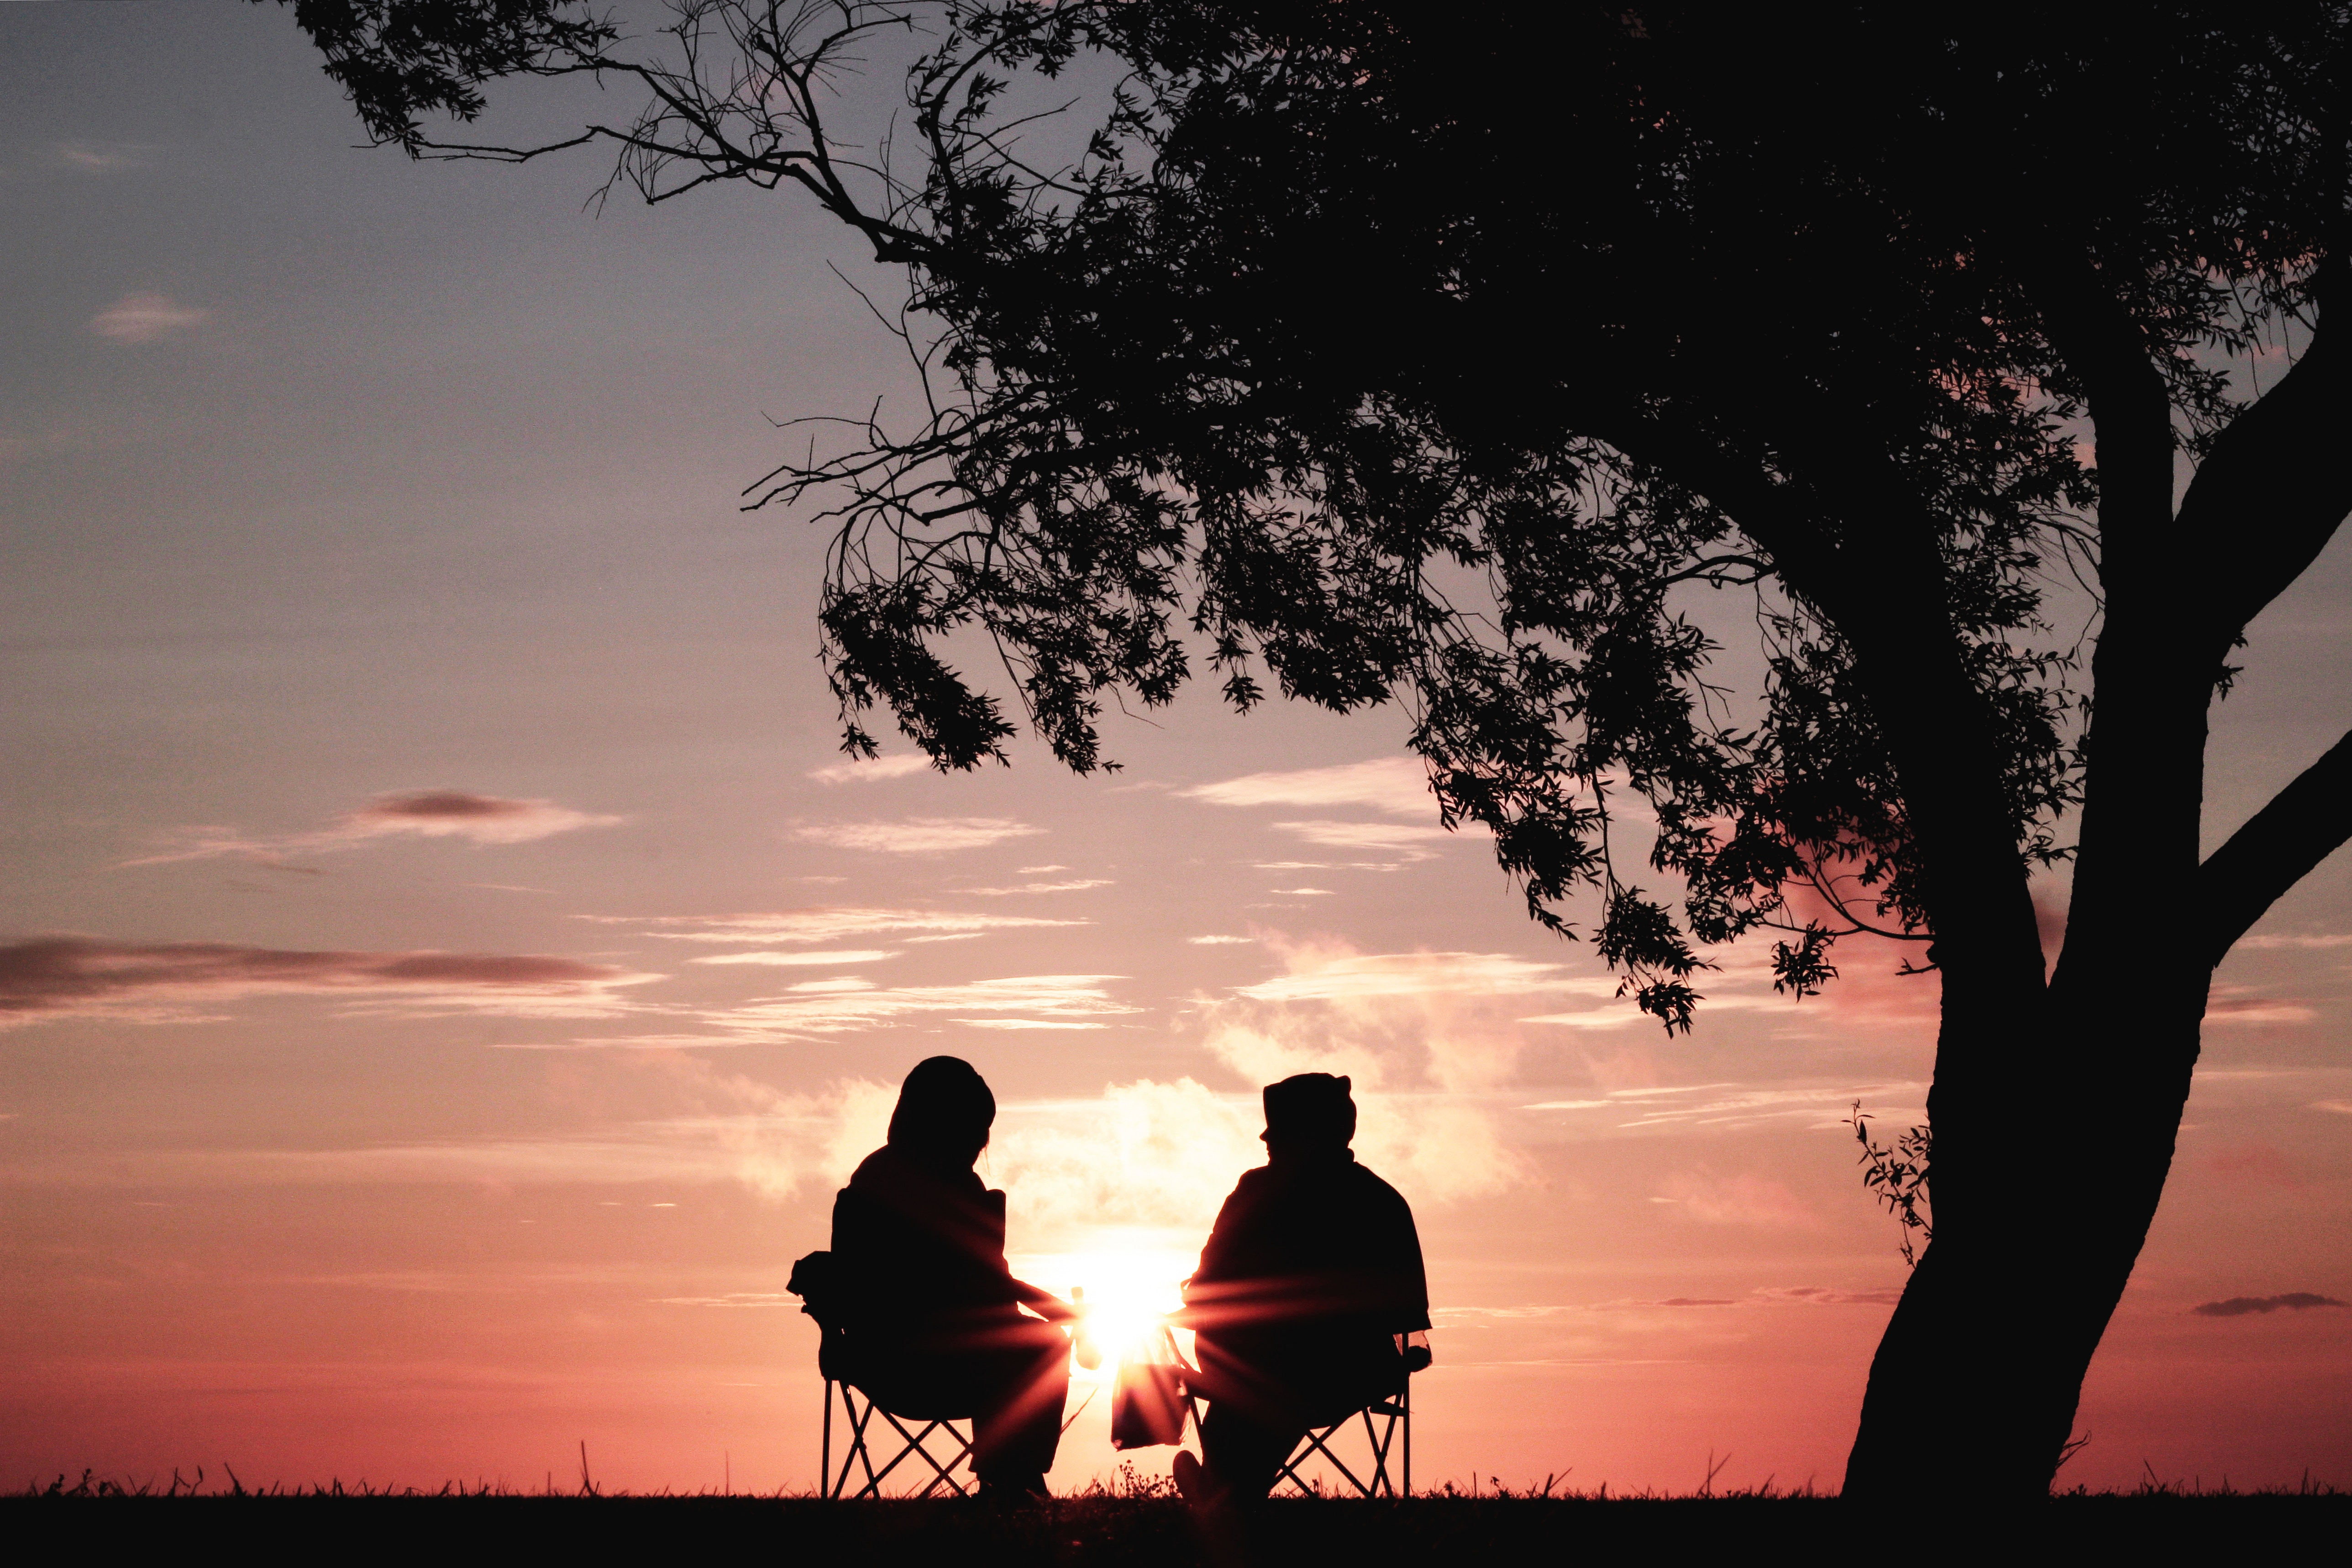 2 people in sunset